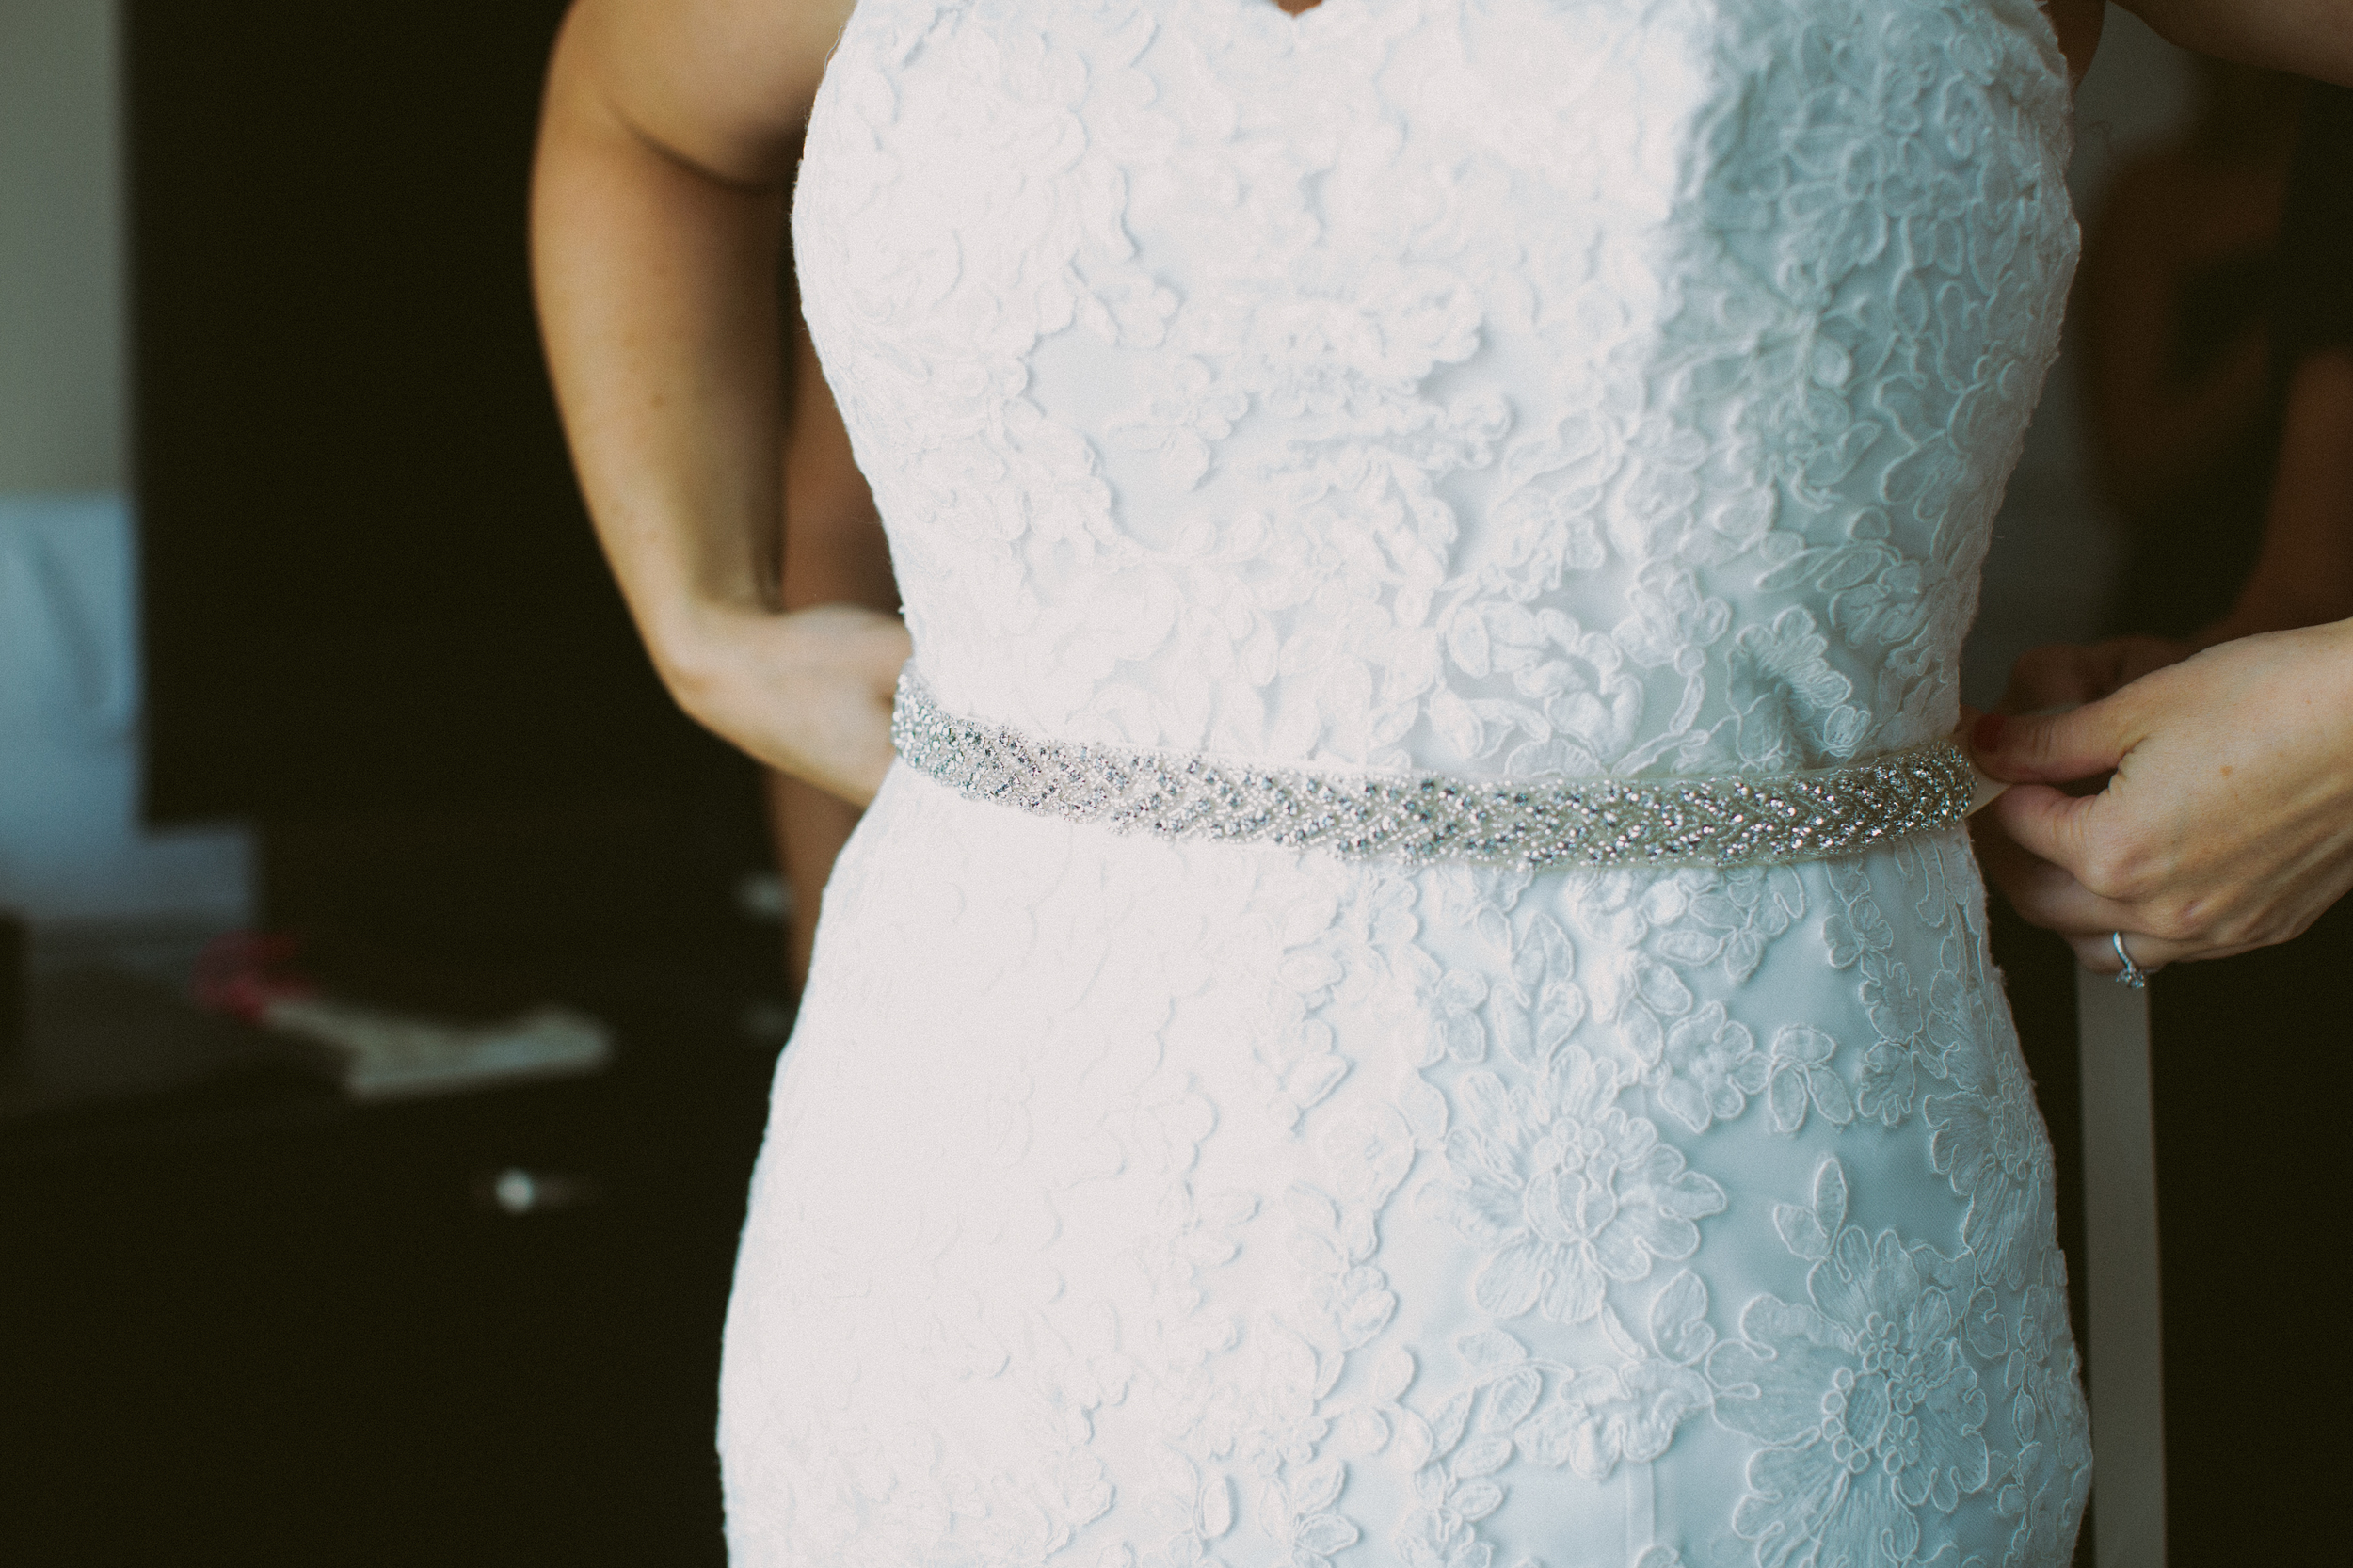 Vness_Photography_Wedding_Photographer_Washington-DC_Fish_Wedding-150.JPG